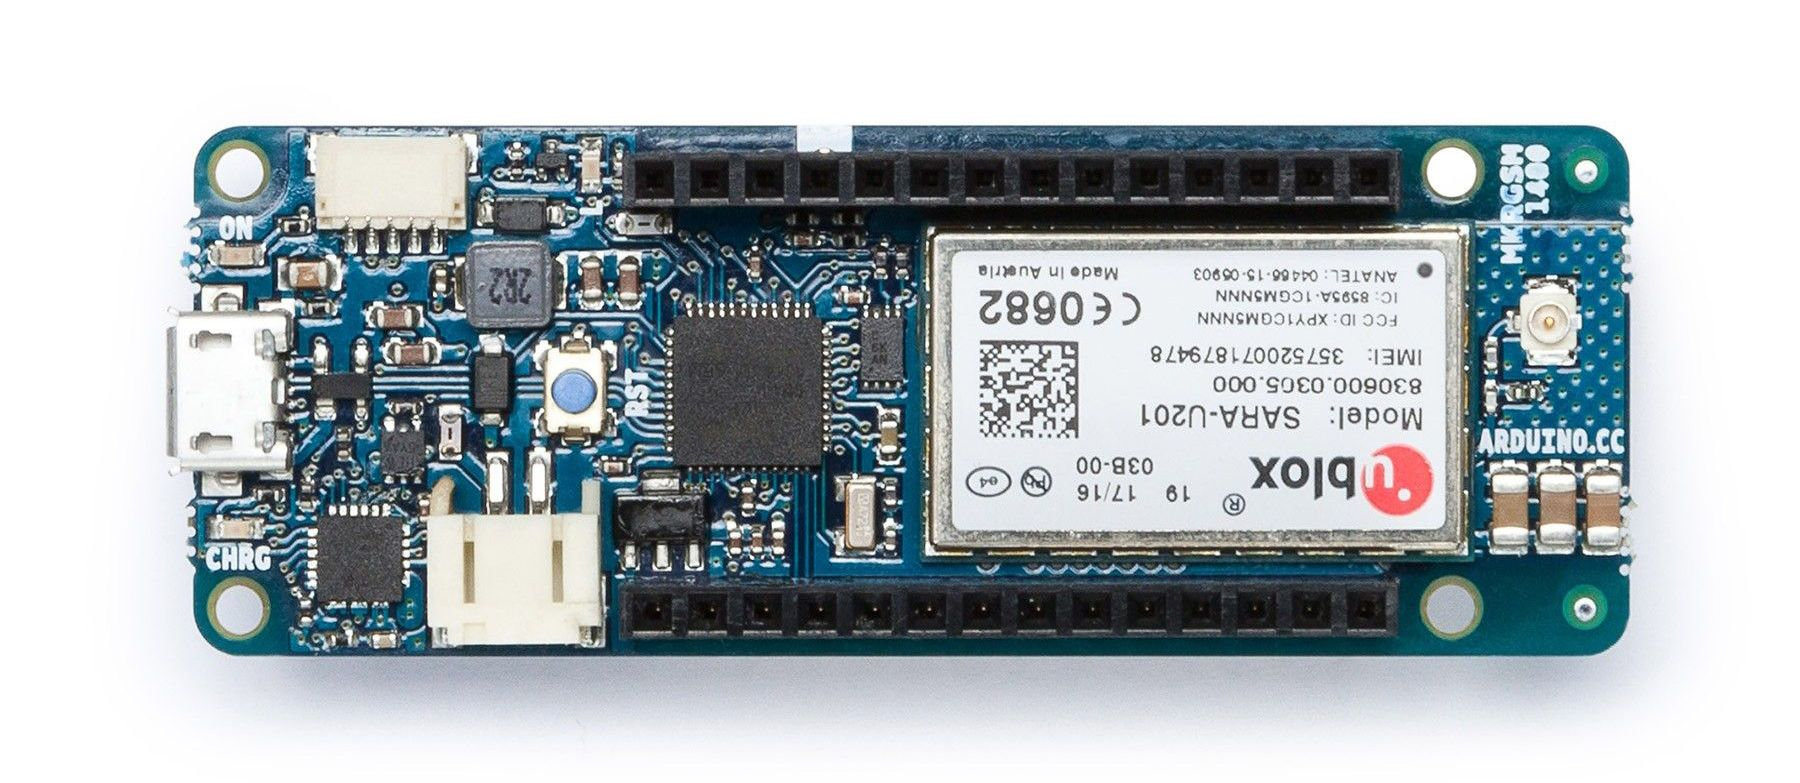 MKR GSM 1400 - Wia